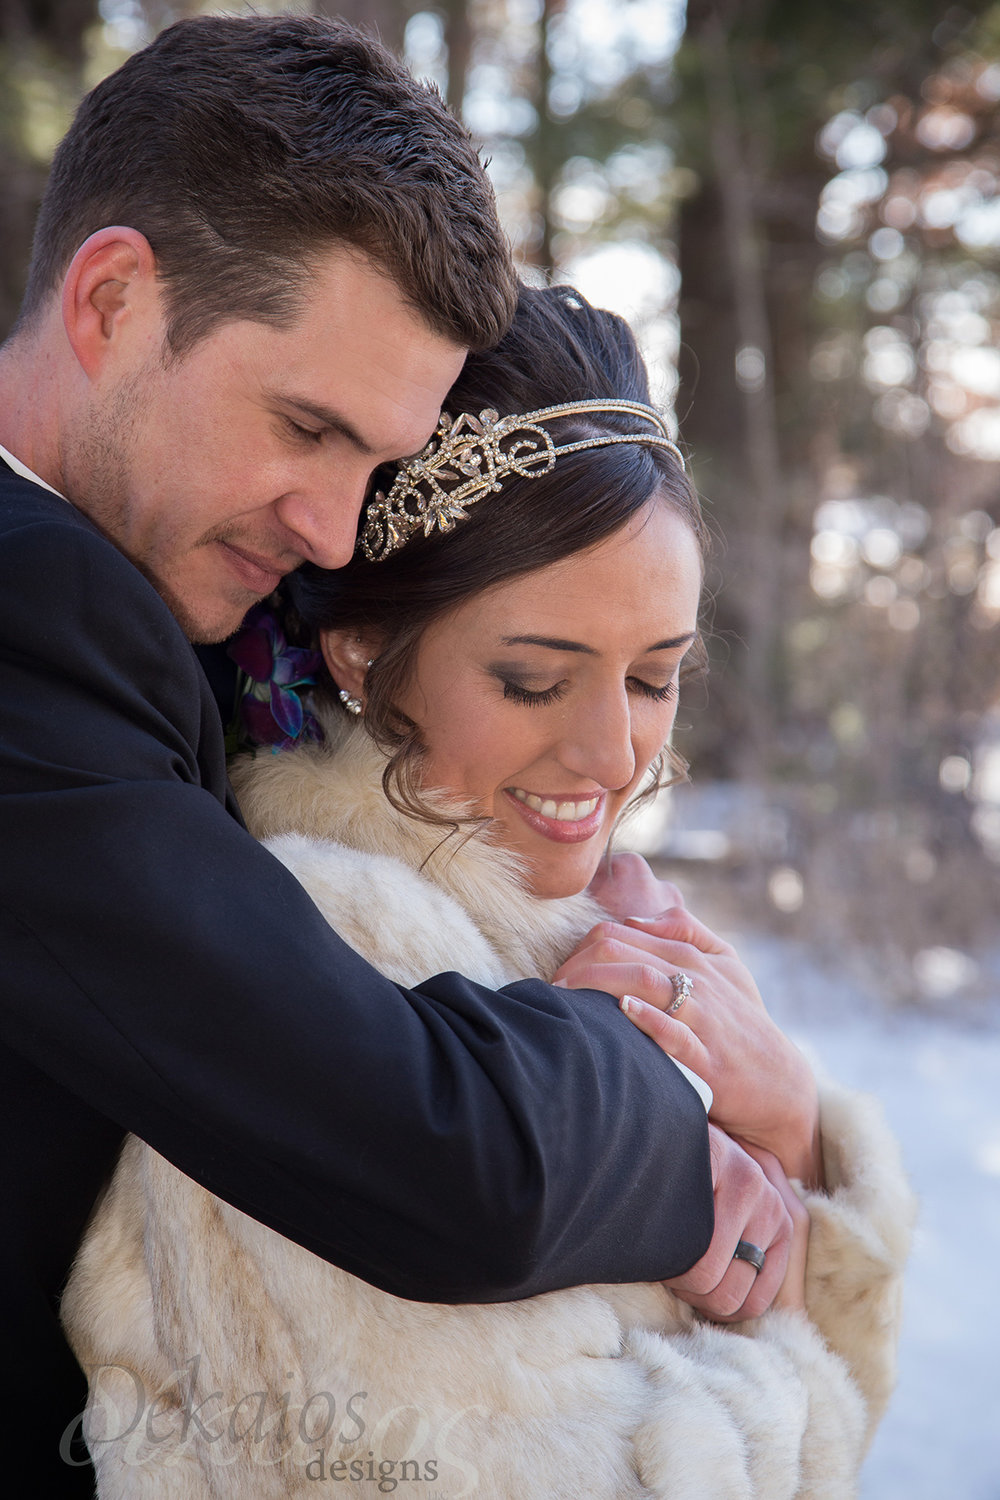 This was a great first wedding to the wedding season this past March. Mike+Alex were so beautiful!